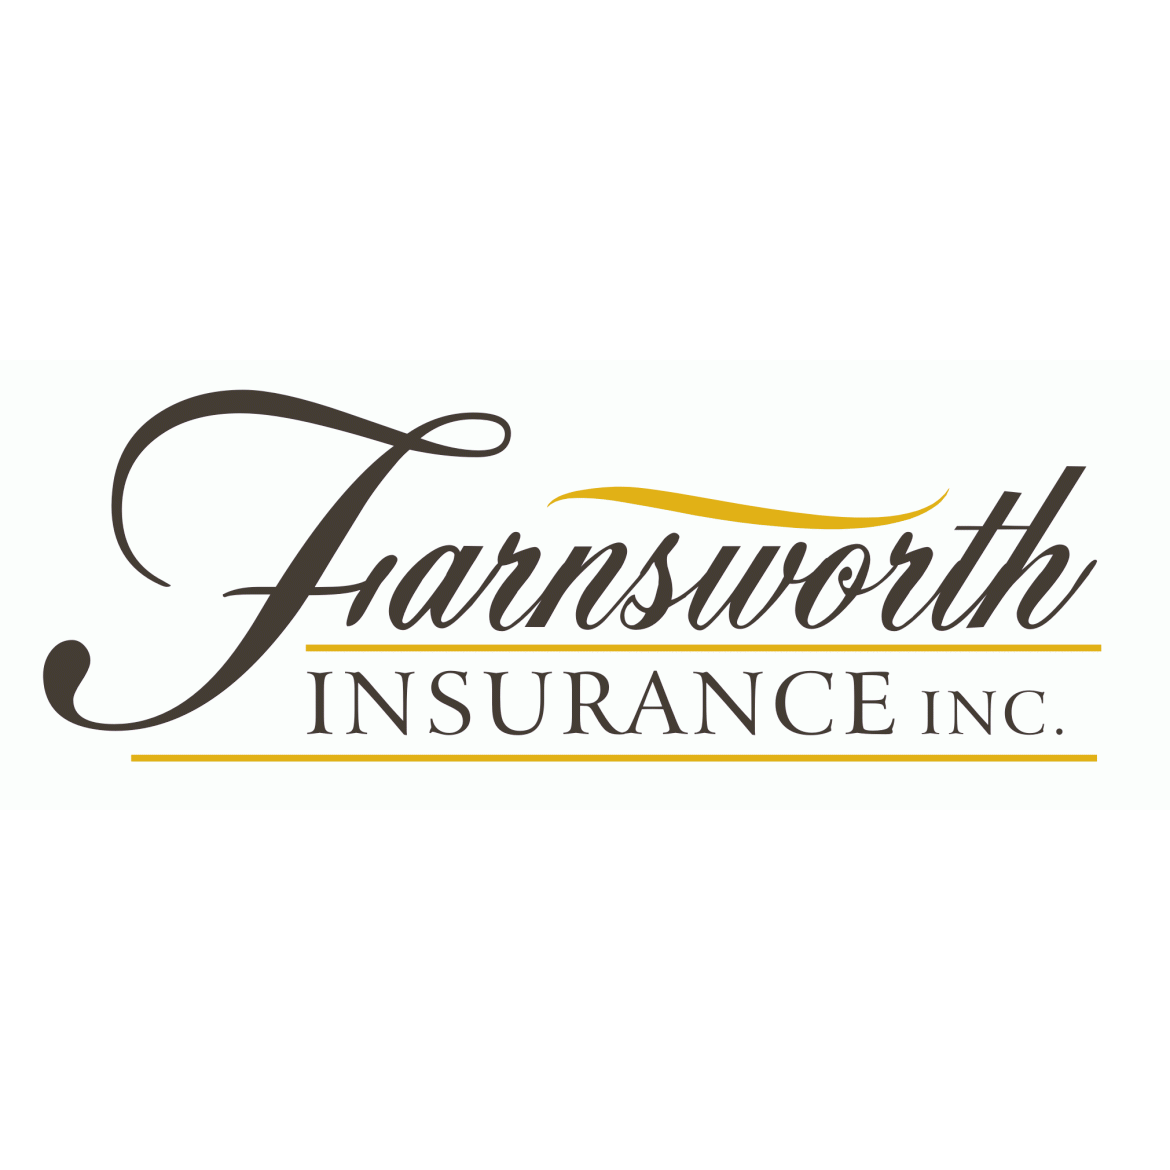 Farnsworth Insurance, Inc.